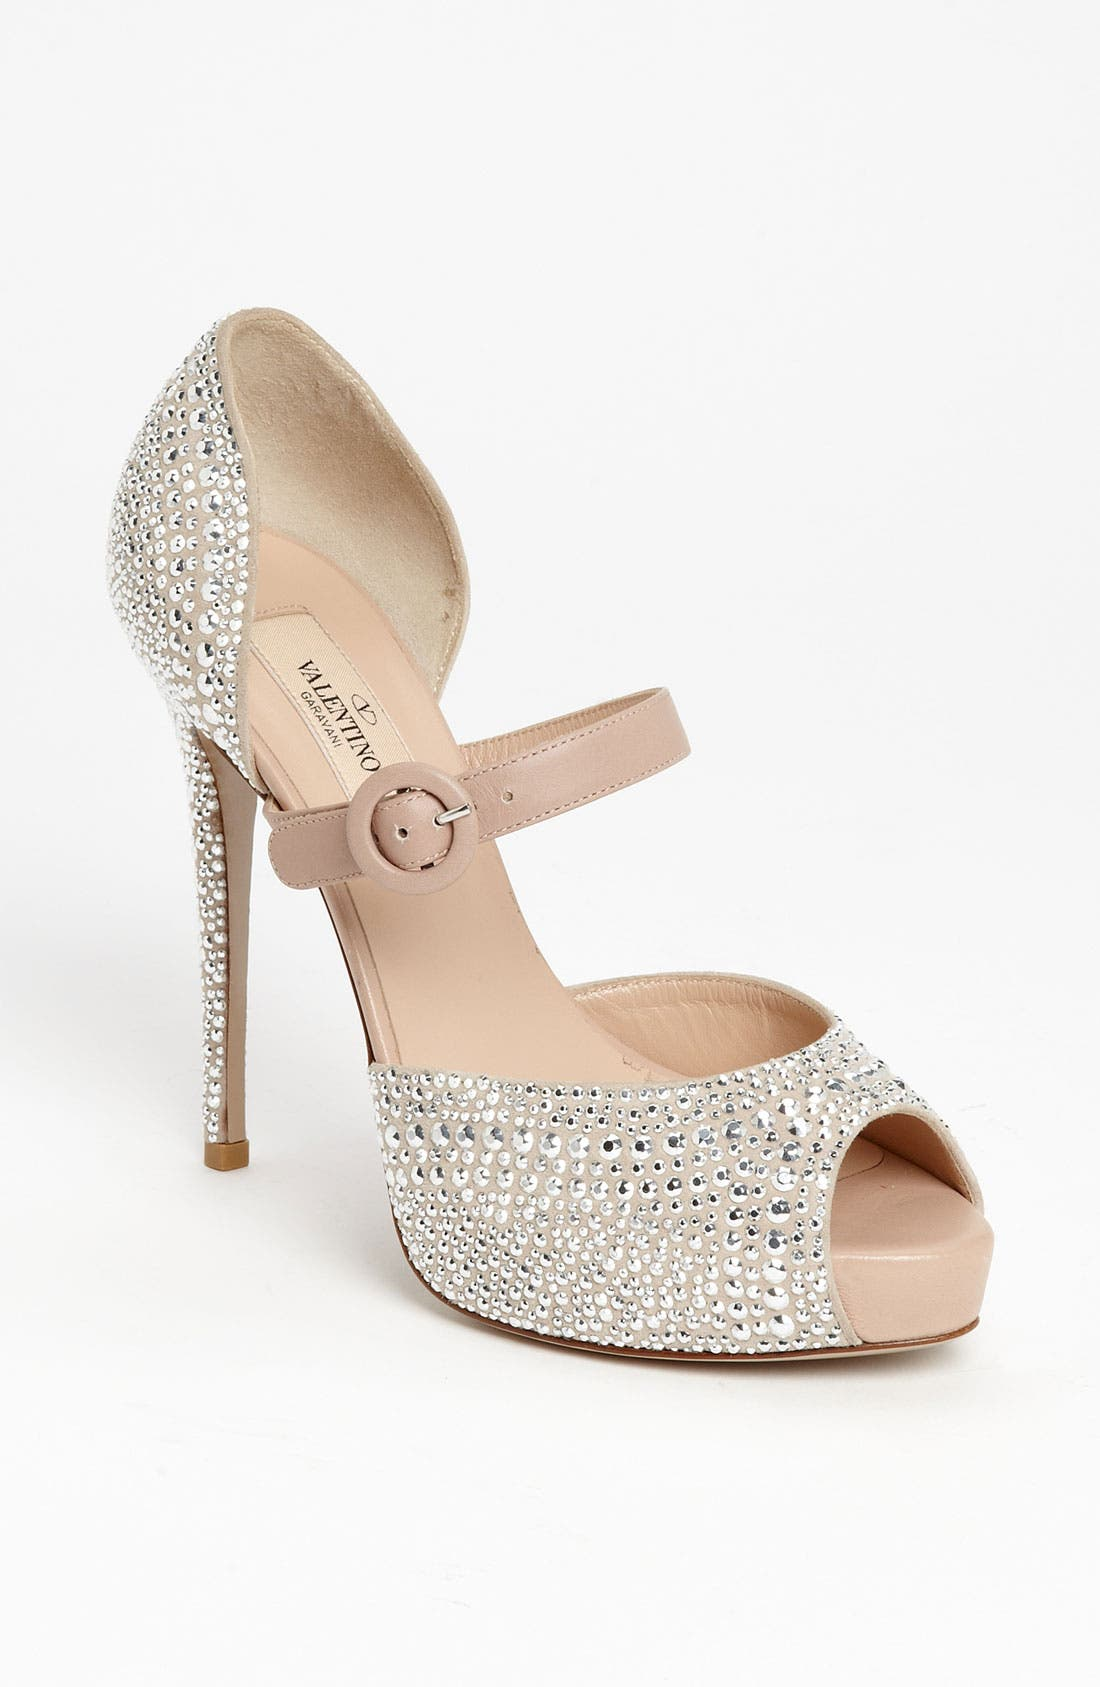 Main Image - Valentino 'Microstud' Mary Jane Pump